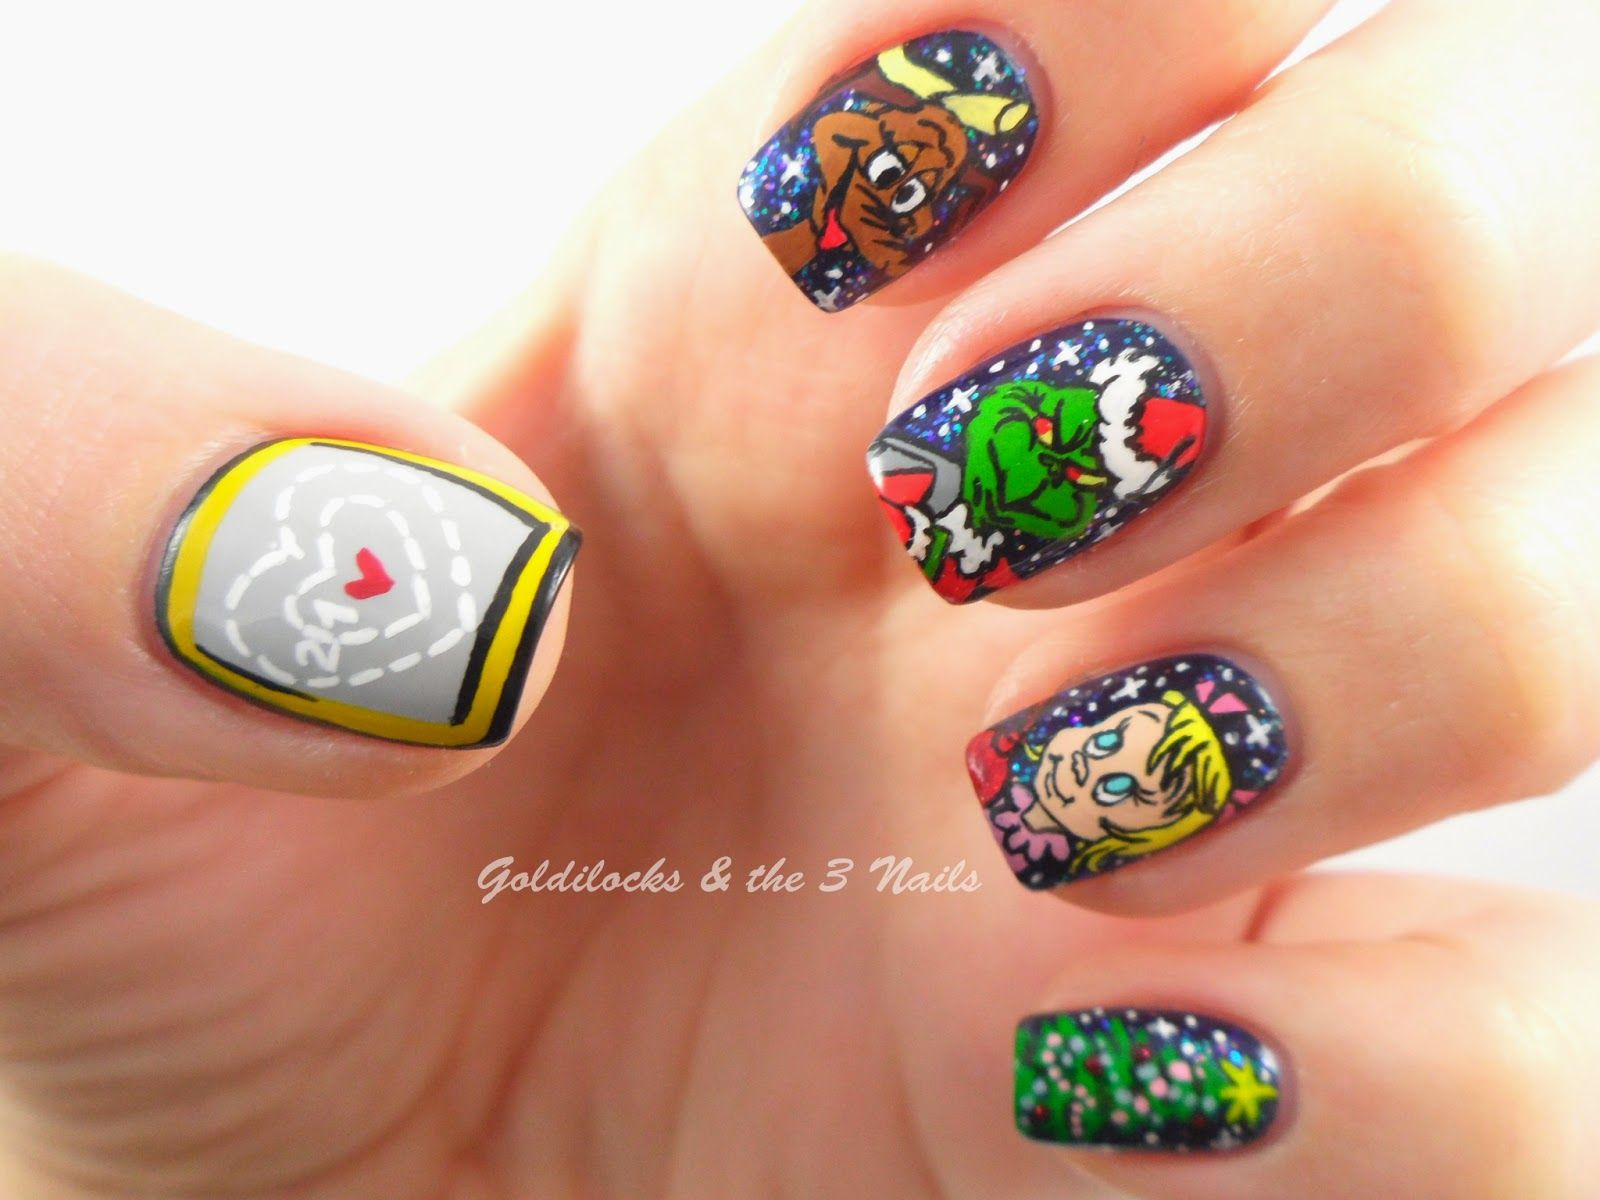 Grinch Nails | Goldilocks & the Three Nails: How the Grinch Stole ...